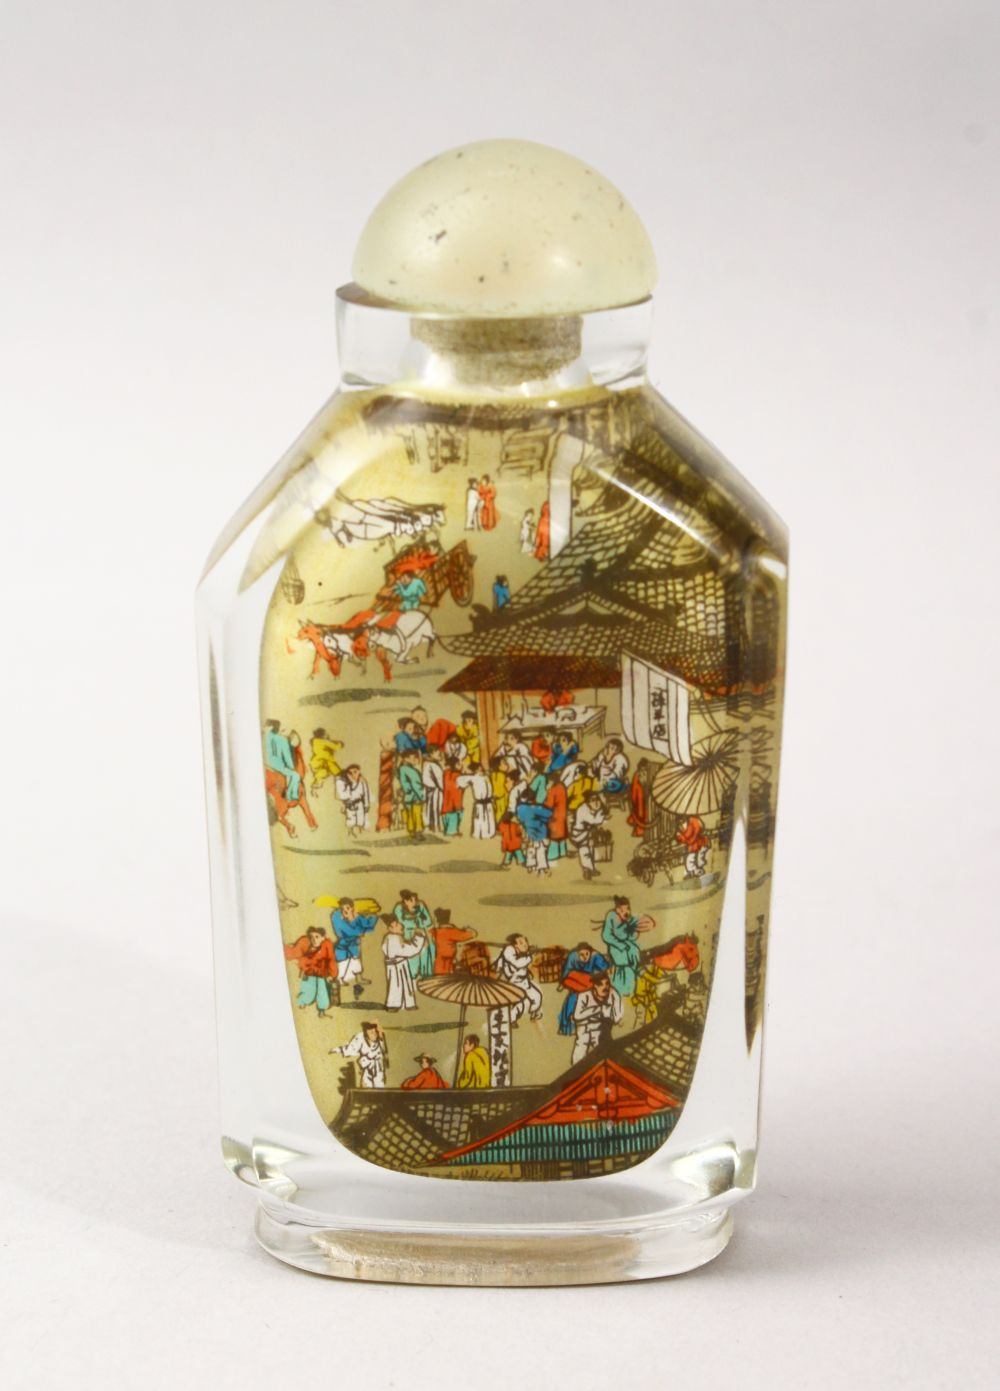 A GOOD 19TH / 20TH CENTURY CHINESE REVERSE PAINTED GLASS SNUFF BOTTLE, the bottle painted to